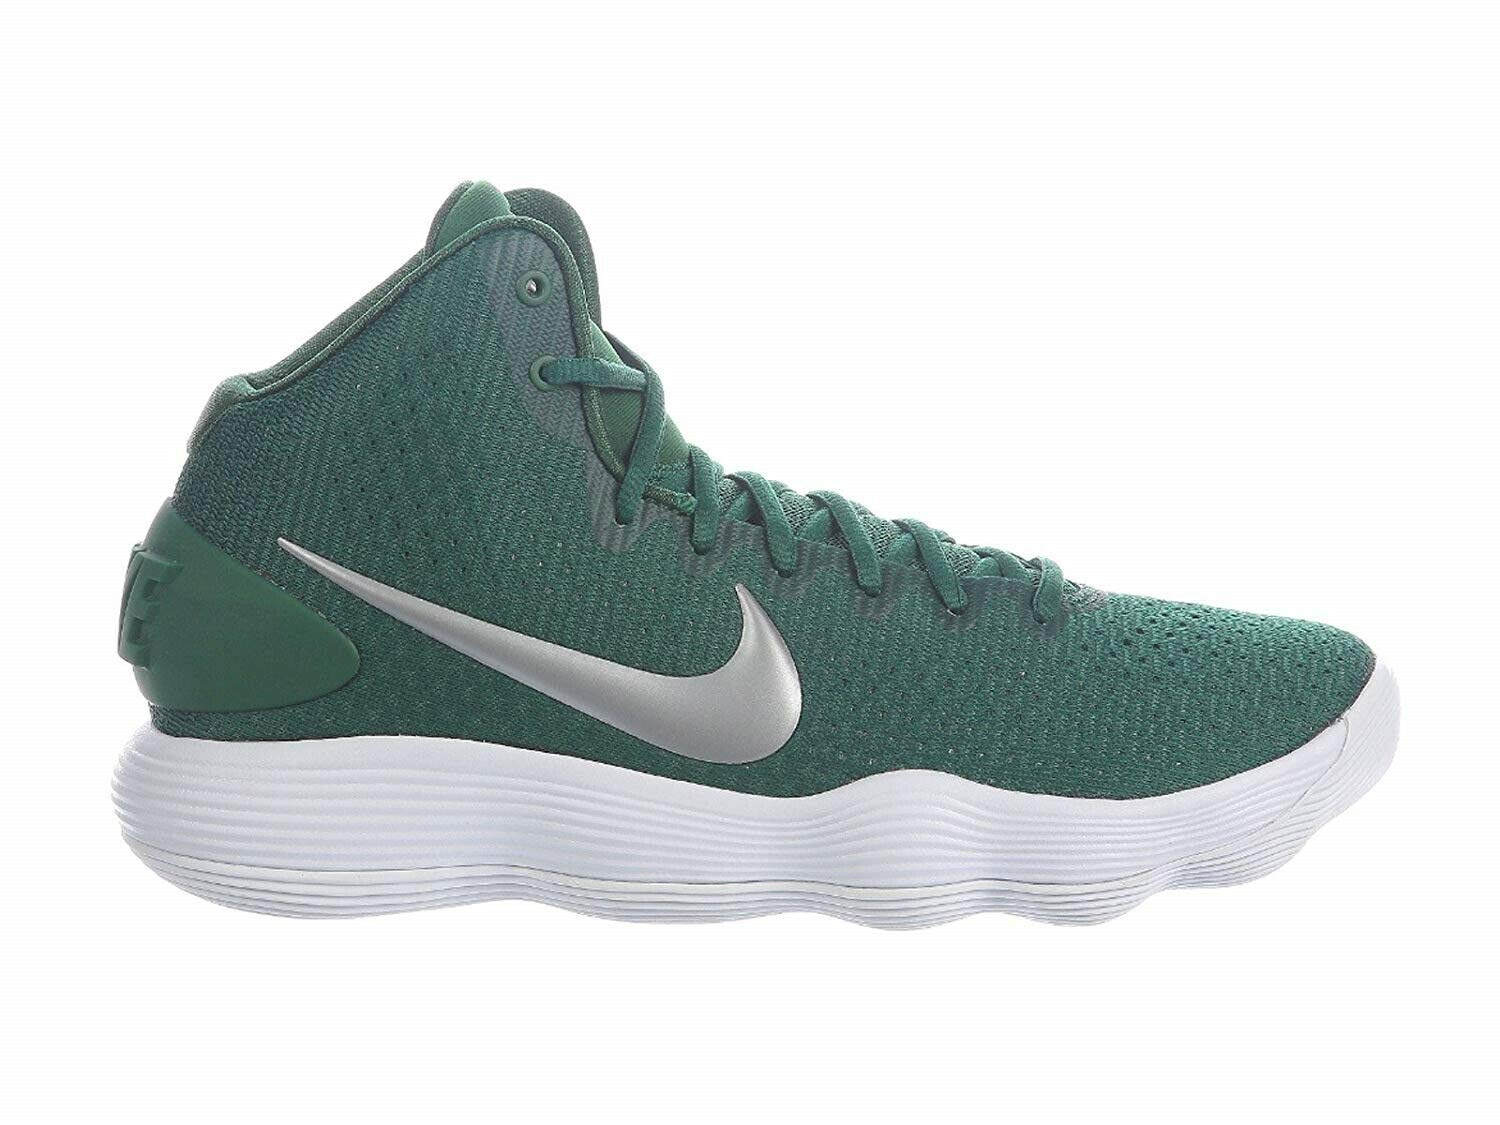 c0508dee9954 Amazon.com  Nike Men s Hyperdunk 2017 TB Basketball Shoes 897808 300 Green  Size 13 (1R4)  Sports Collectibles